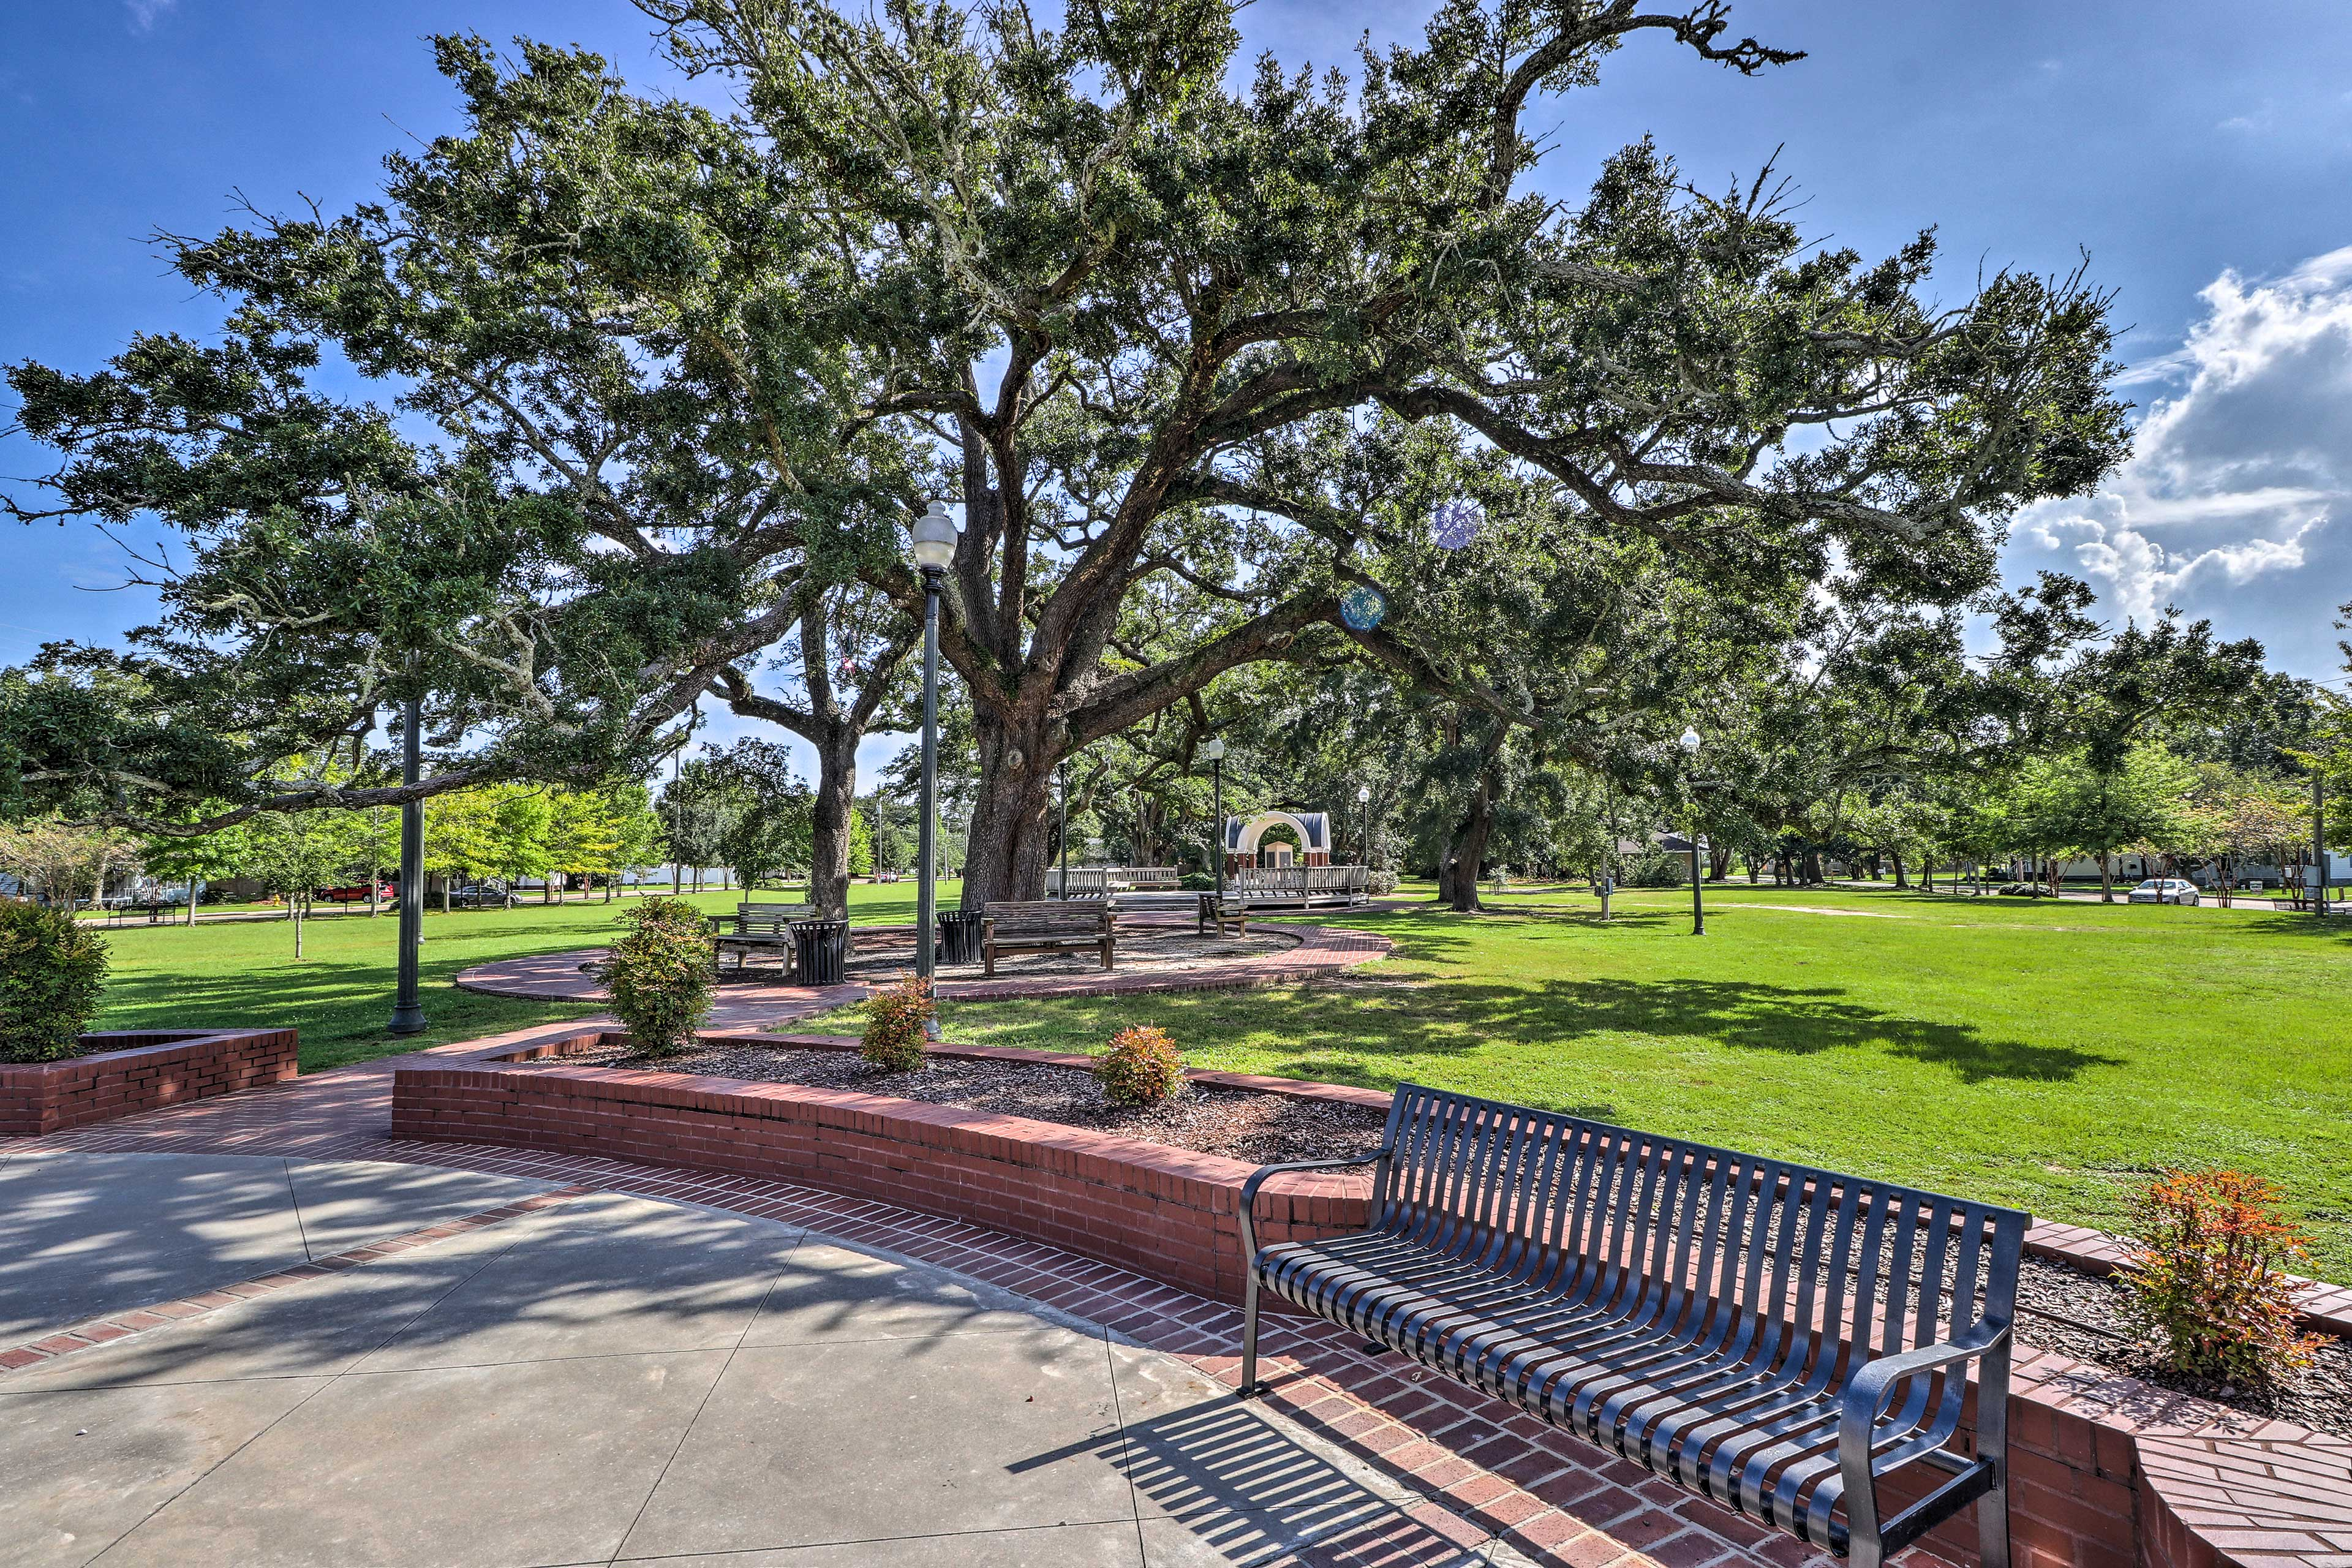 Harper Mccaughan Pavilion is a lovely park 5 minutes from the property.